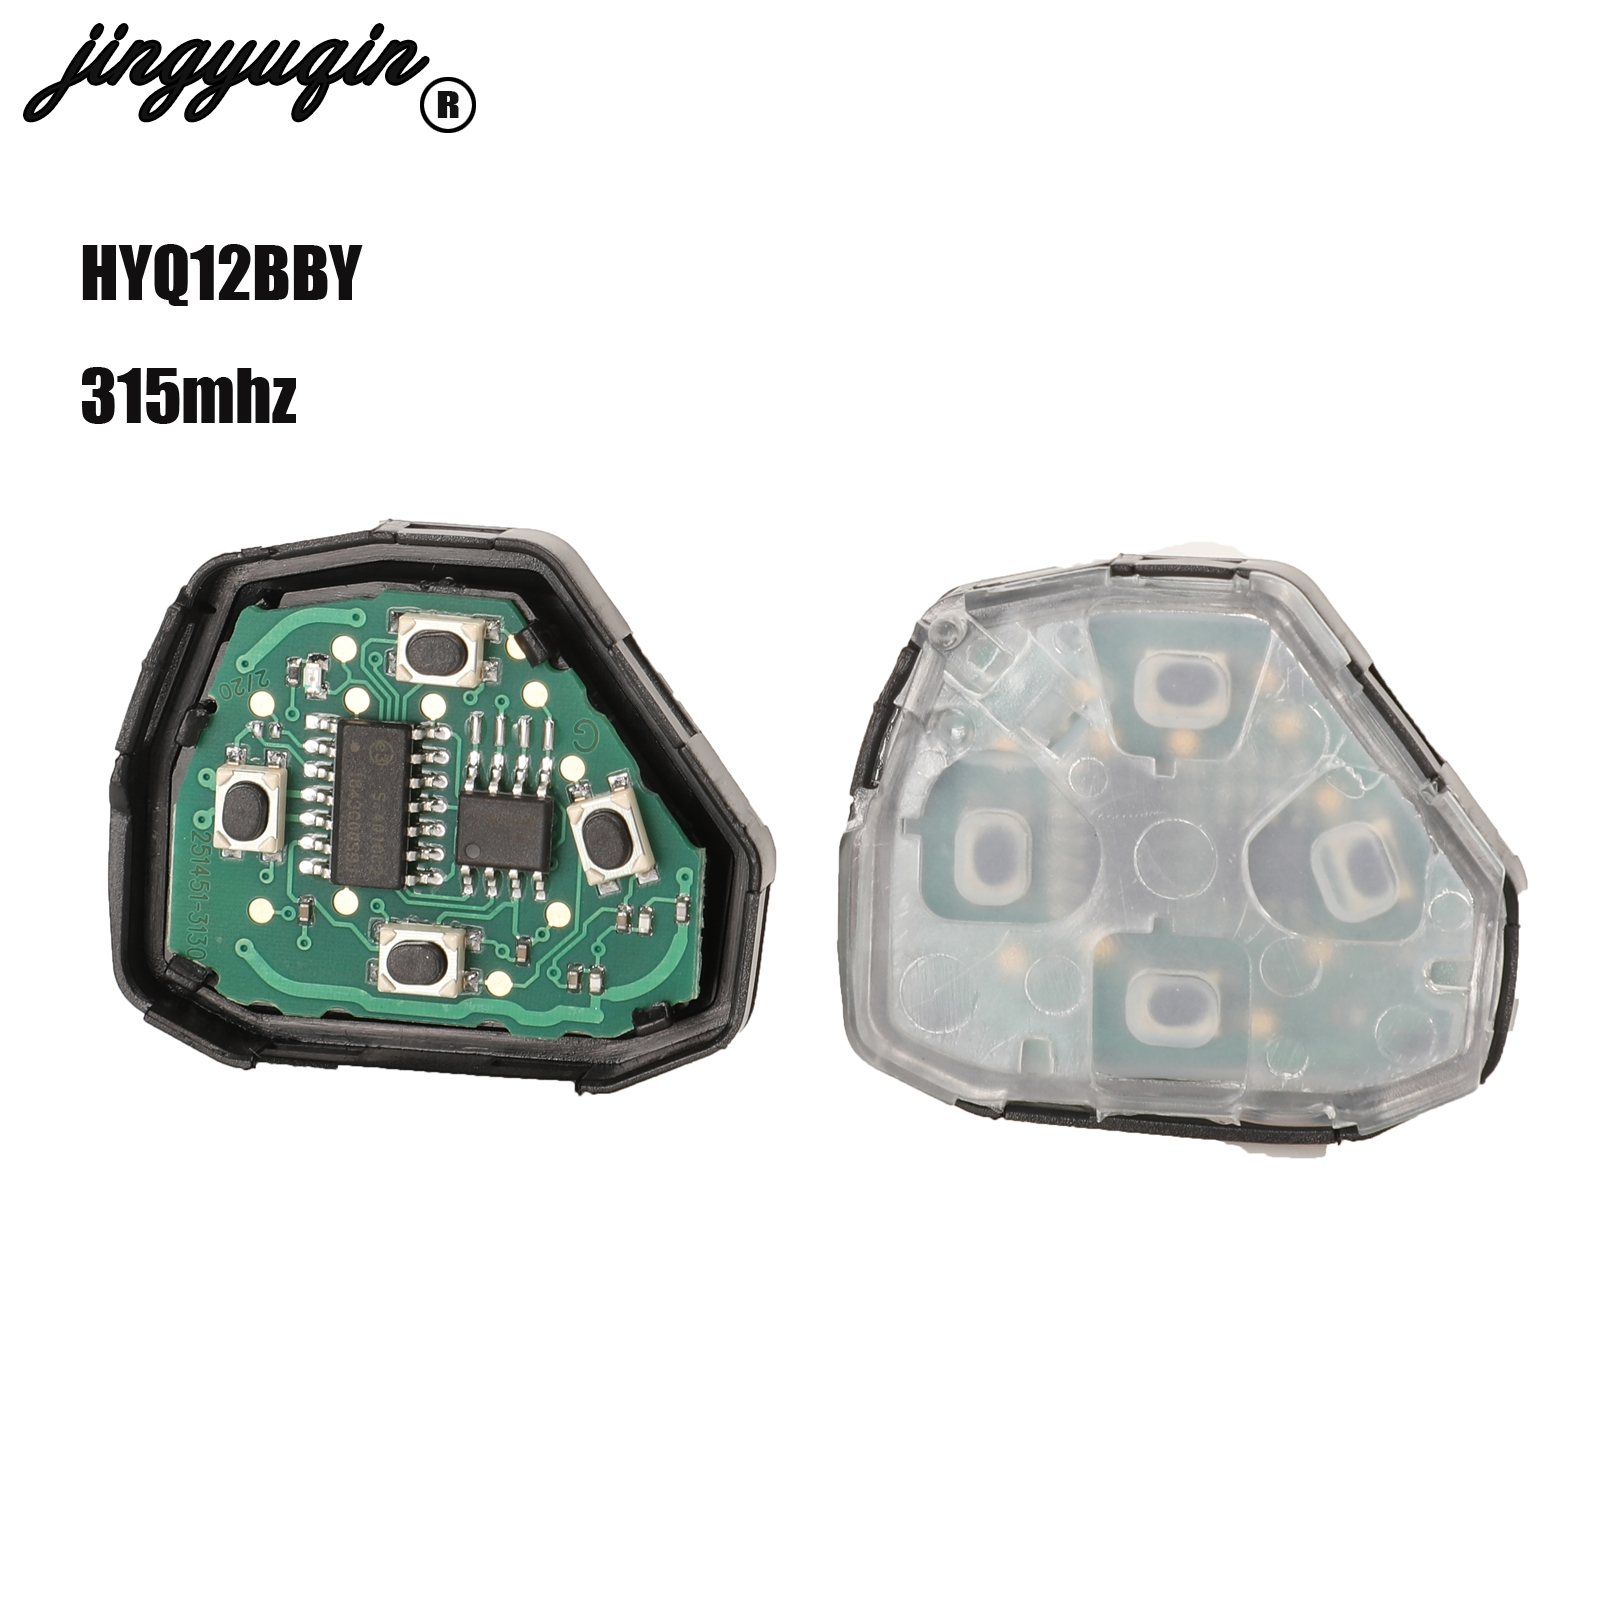 jingyuqin 3/4 Buttons Car <font><b>Remote</b></font> <font><b>Key</b></font> for <font><b>Toyota</b></font> Camry Avalon Corolla Matrix RAV4 Venza <font><b>Yaris</b></font> HyQ12BBY 314.4 Mhz image